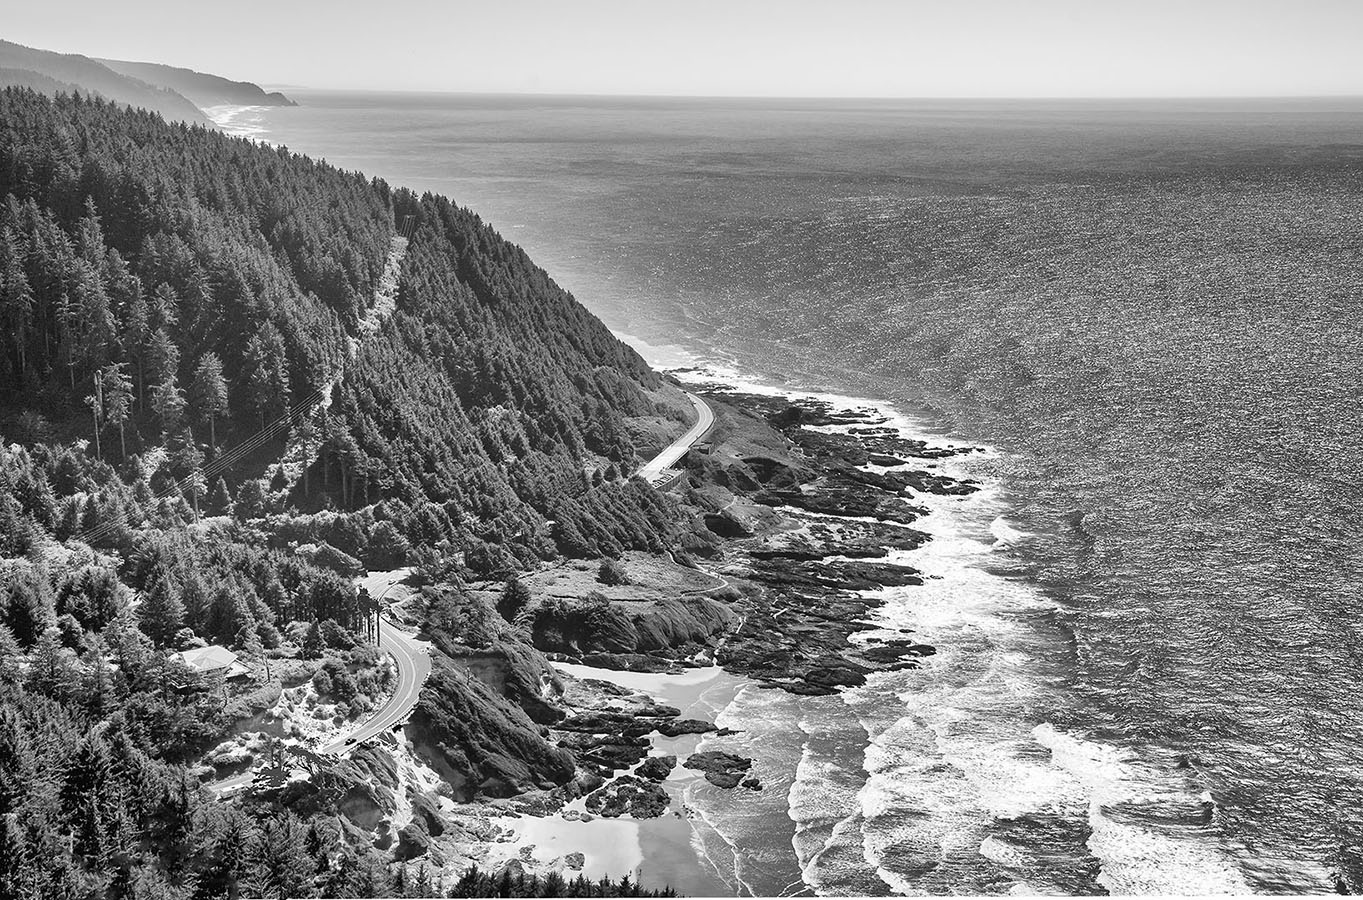 Perpetua Viewpoint photographing the oregon coast